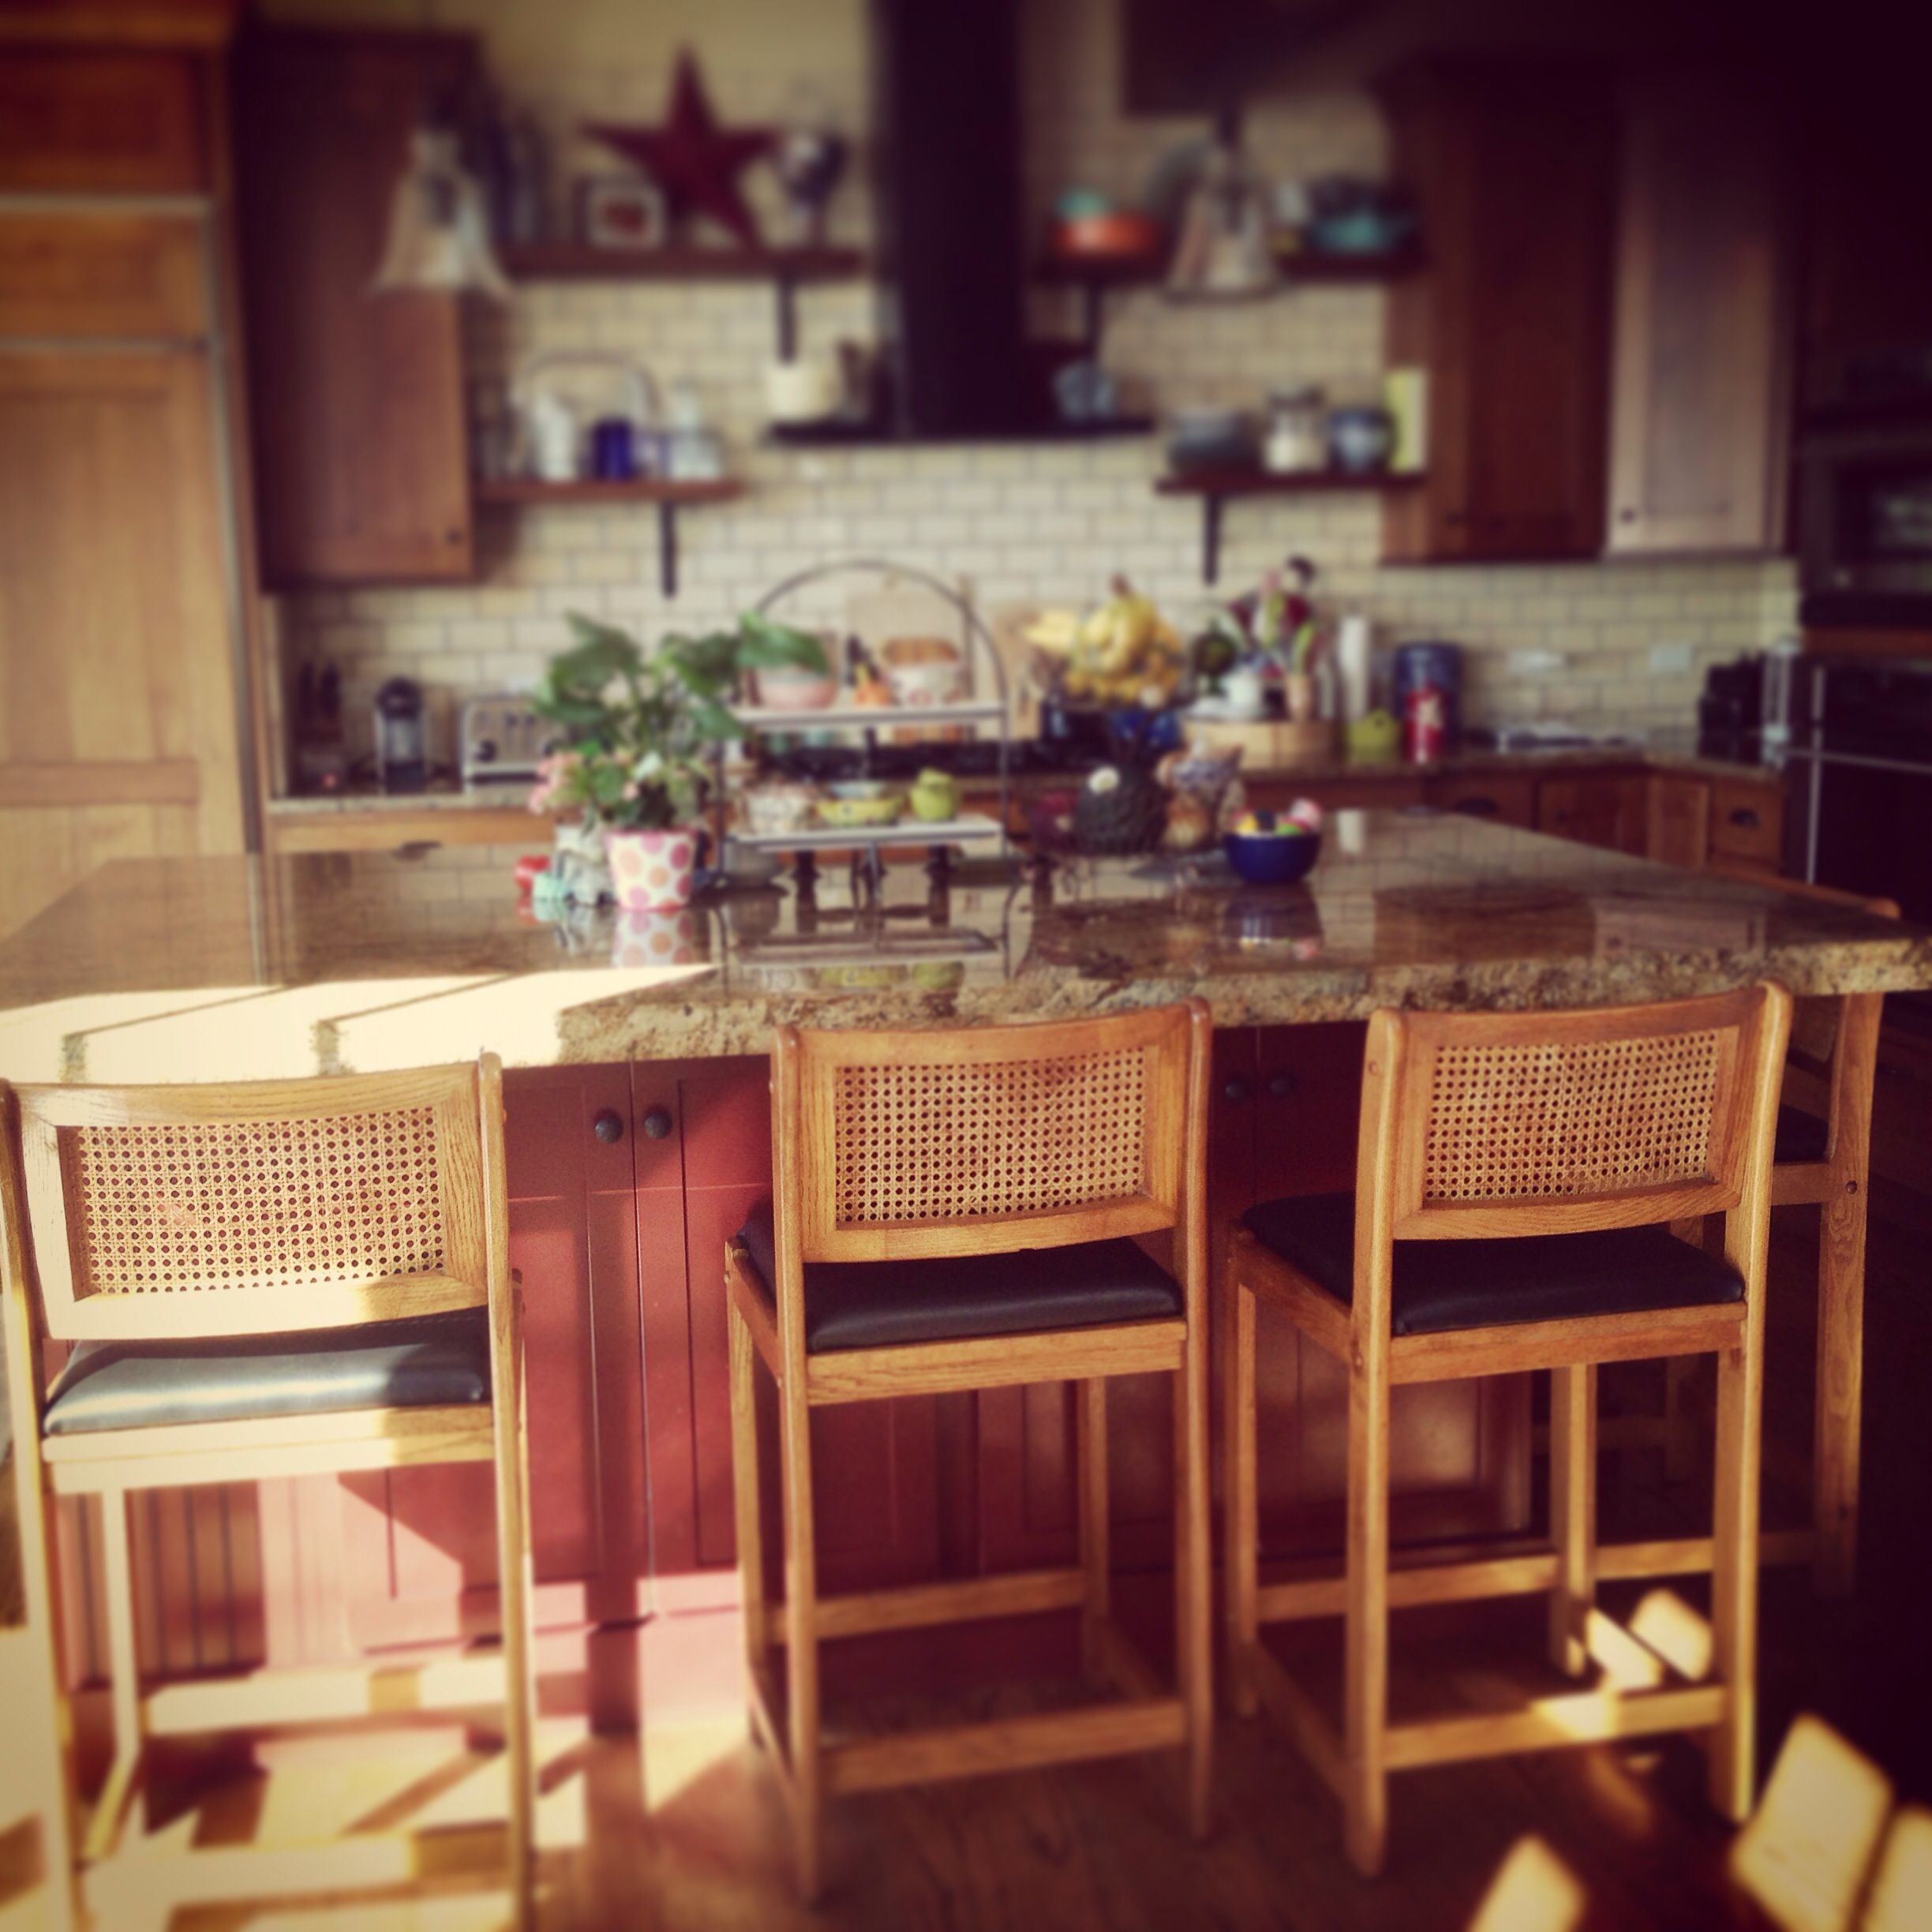 #bunnypimpedmykitchen with these amazing vintage stools!  @camp1899 is #solidgold!!!